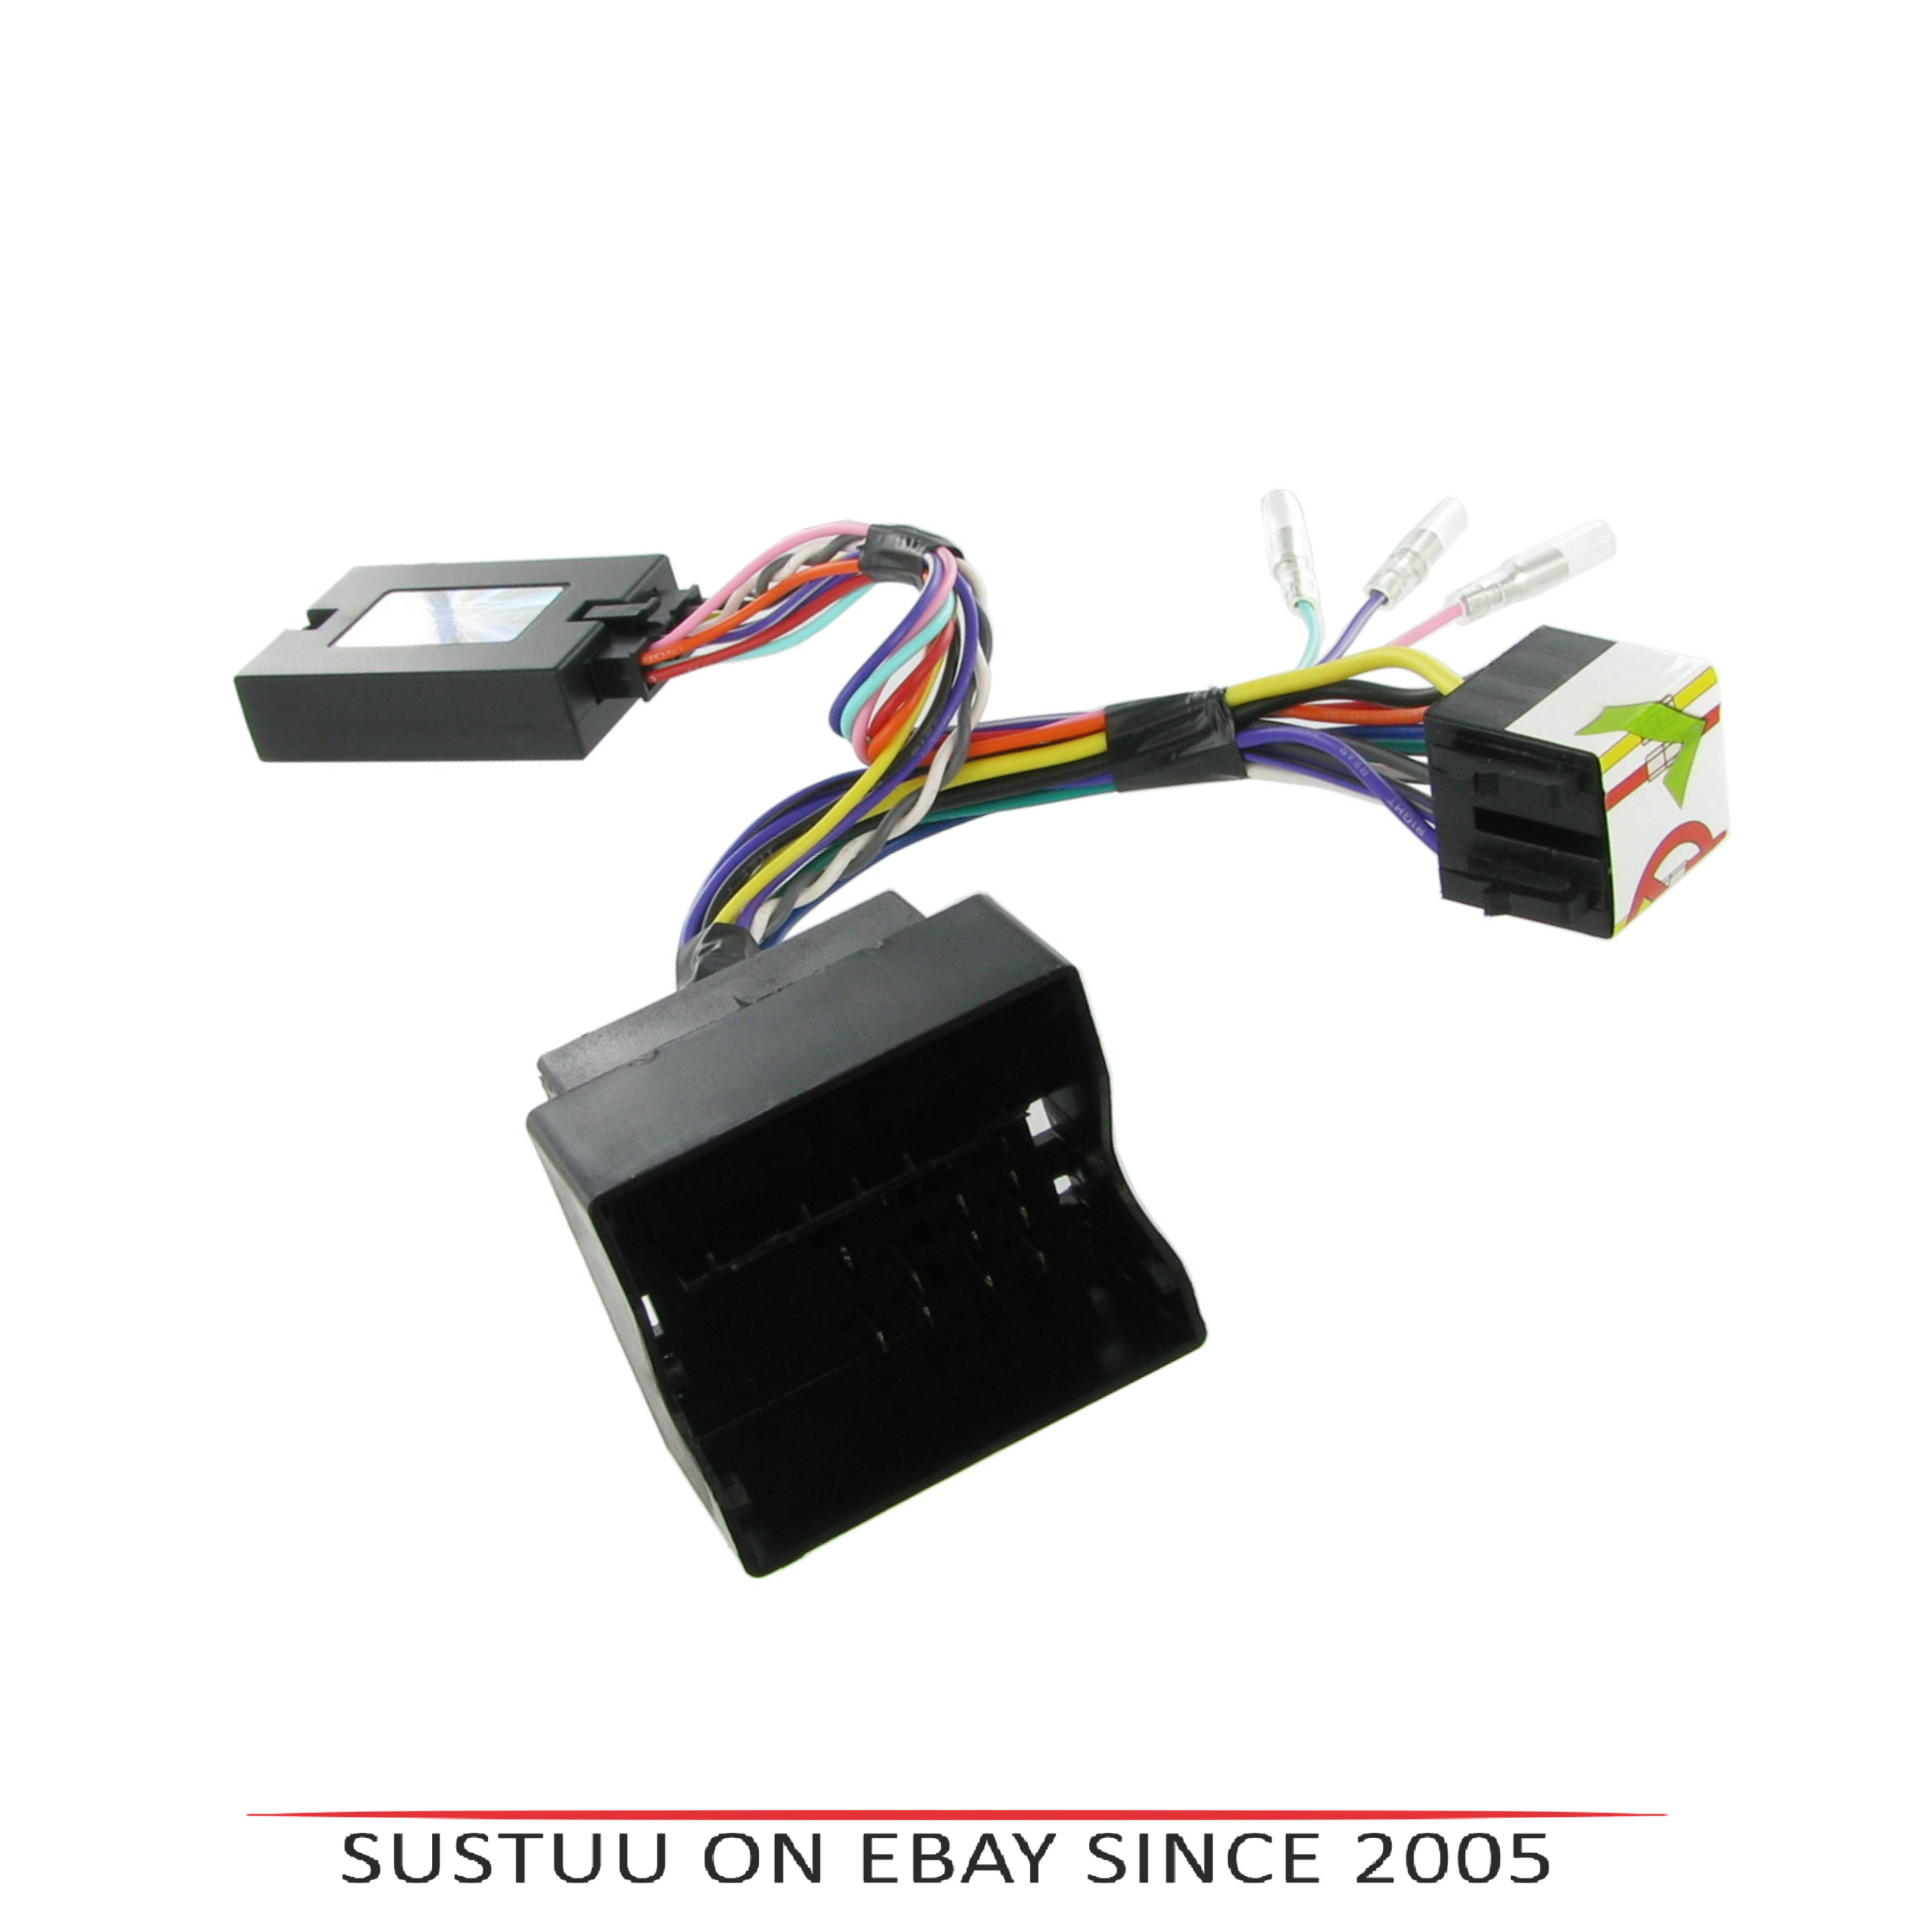 Miraculous C2 Svx004 2 Stalk Interface Electronics Fits Vauxhall Can Bus 40Way Wiring Database Heeveyuccorg